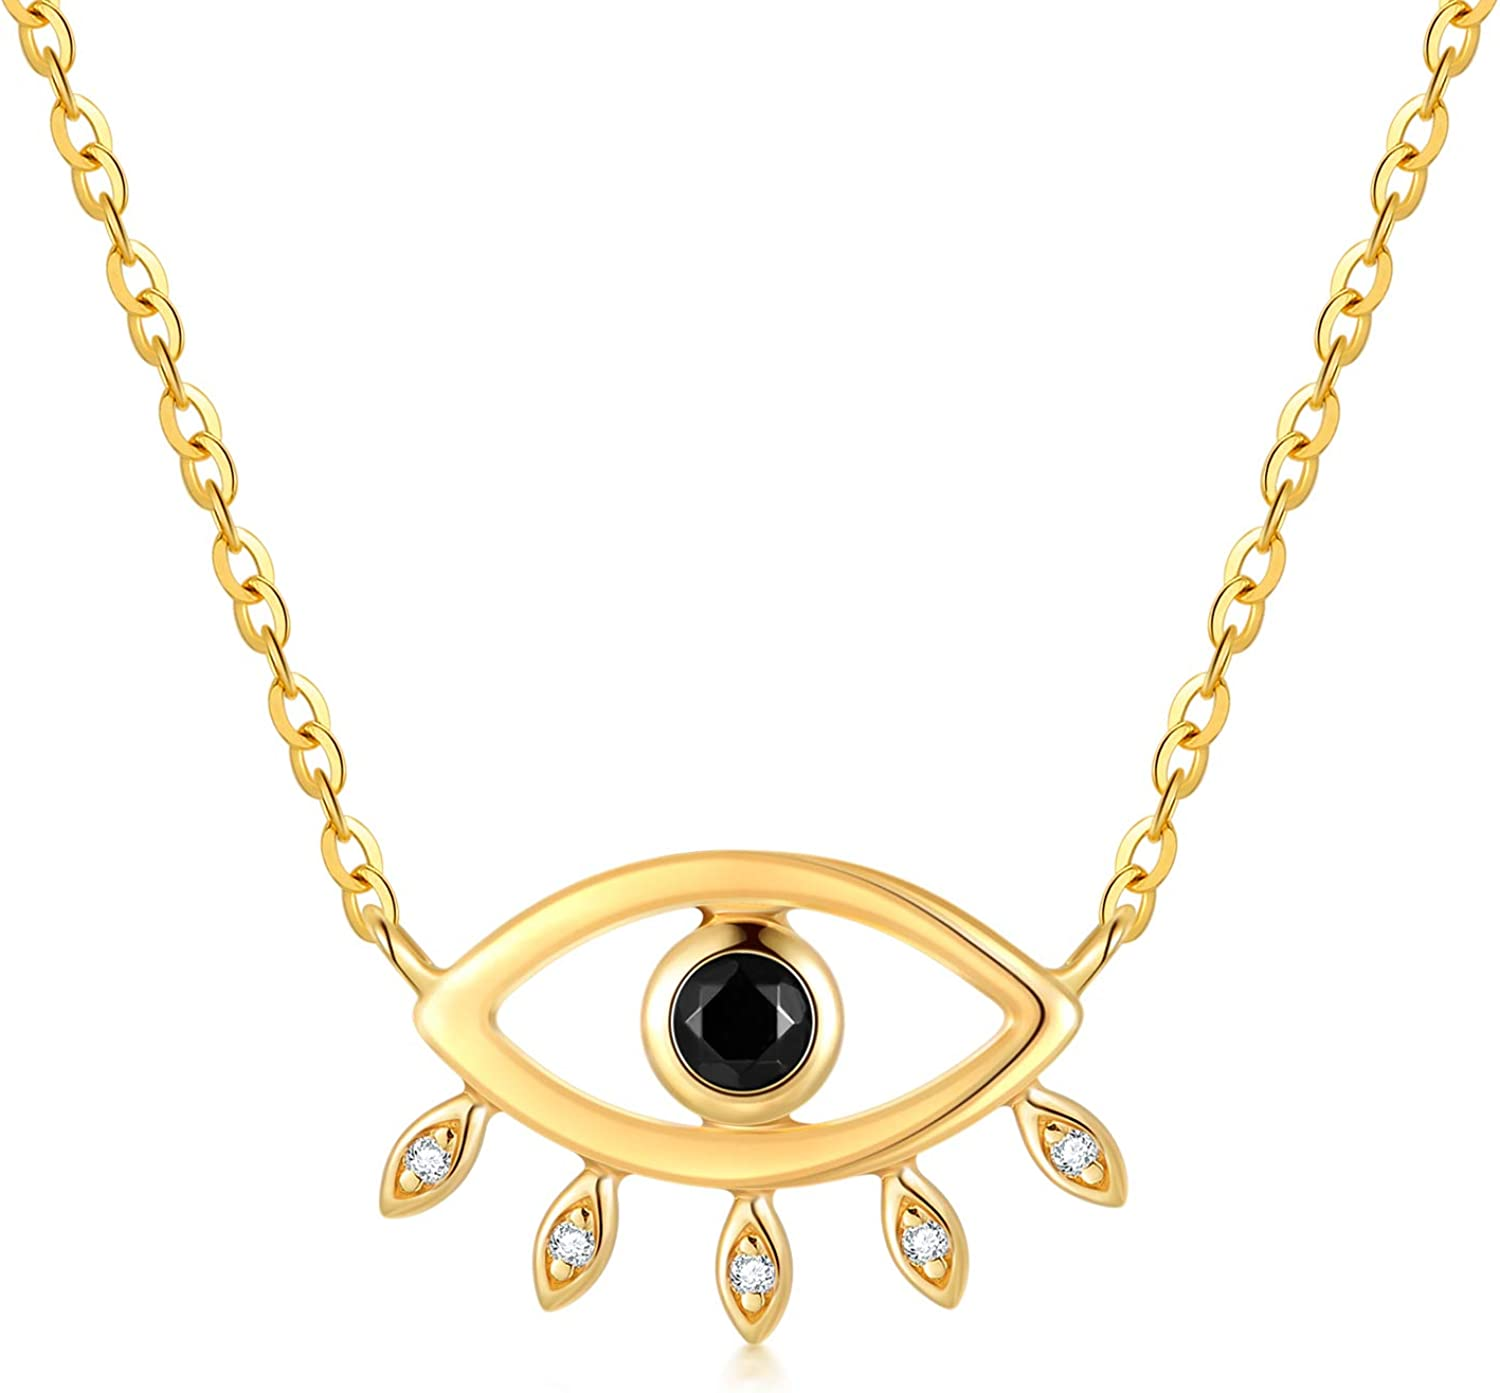 14k Gold Evil Eye Pendant Necklace for Women, Real Gold Choker Necklace Jewelry Gifts for Her, 14+2+1+1 Inch